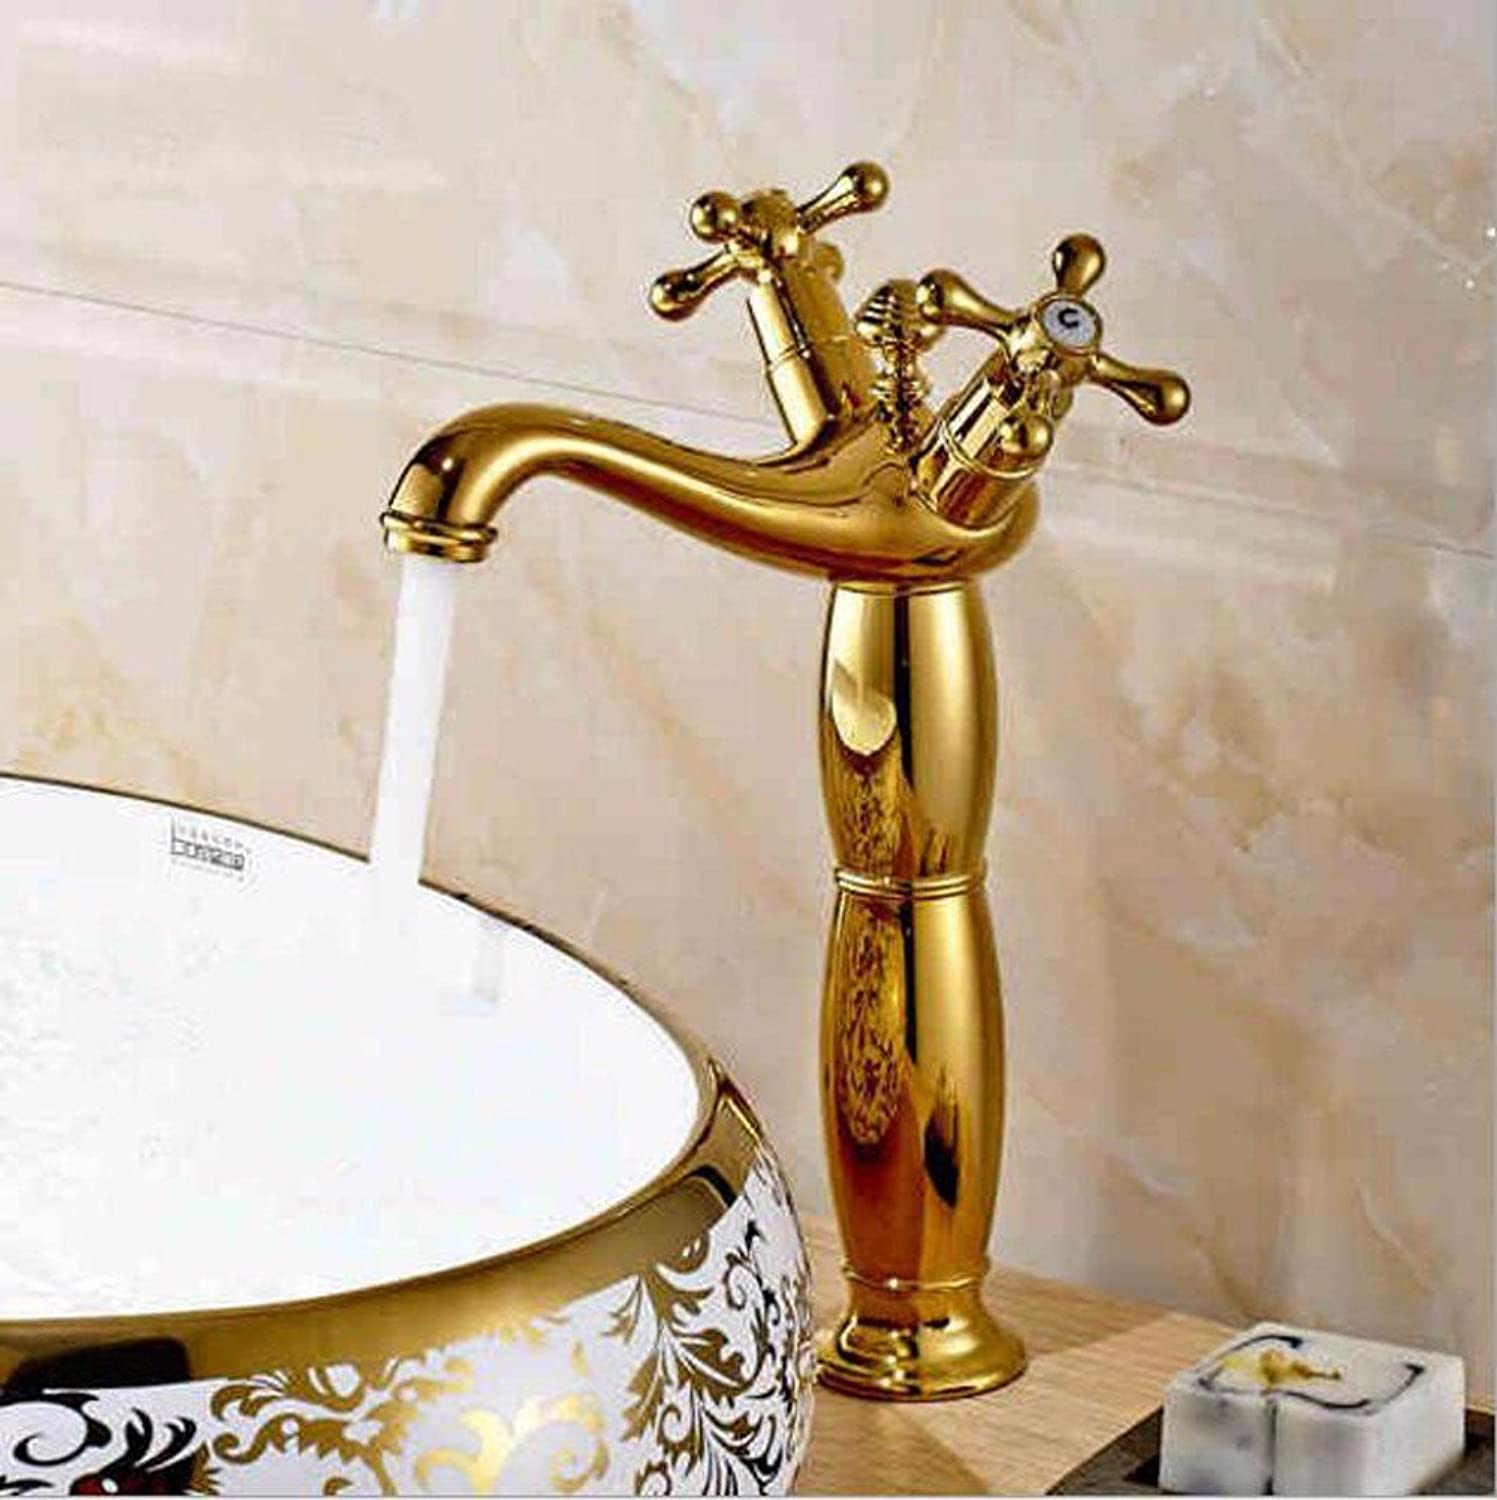 Hlluya Professional Sink Mixer Tap Kitchen Faucet The copper gold bathroom basin taps, double the mixing of hot and cold water sink water faucet